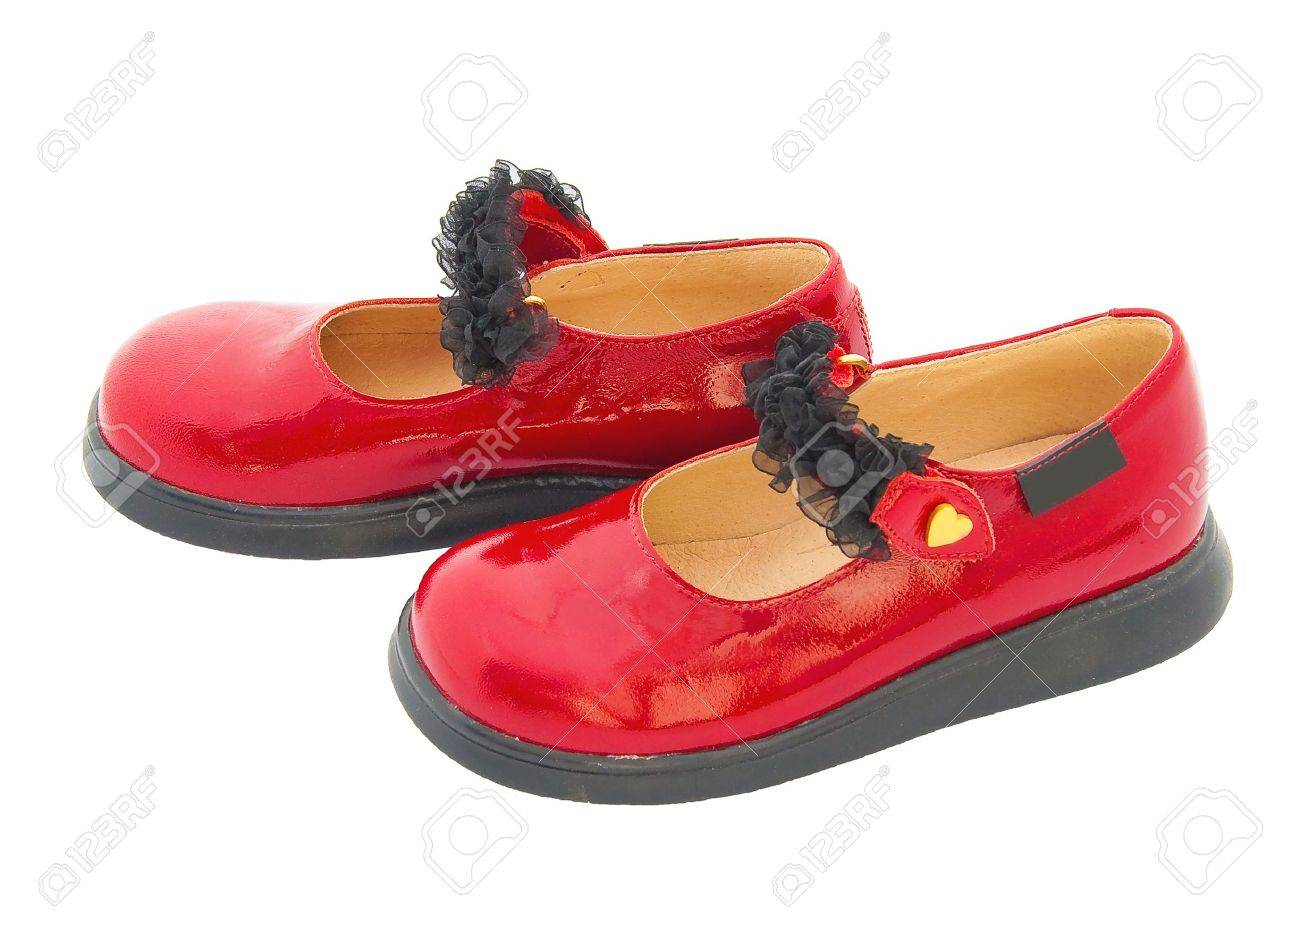 Red Patent Leather Baby Shoes With